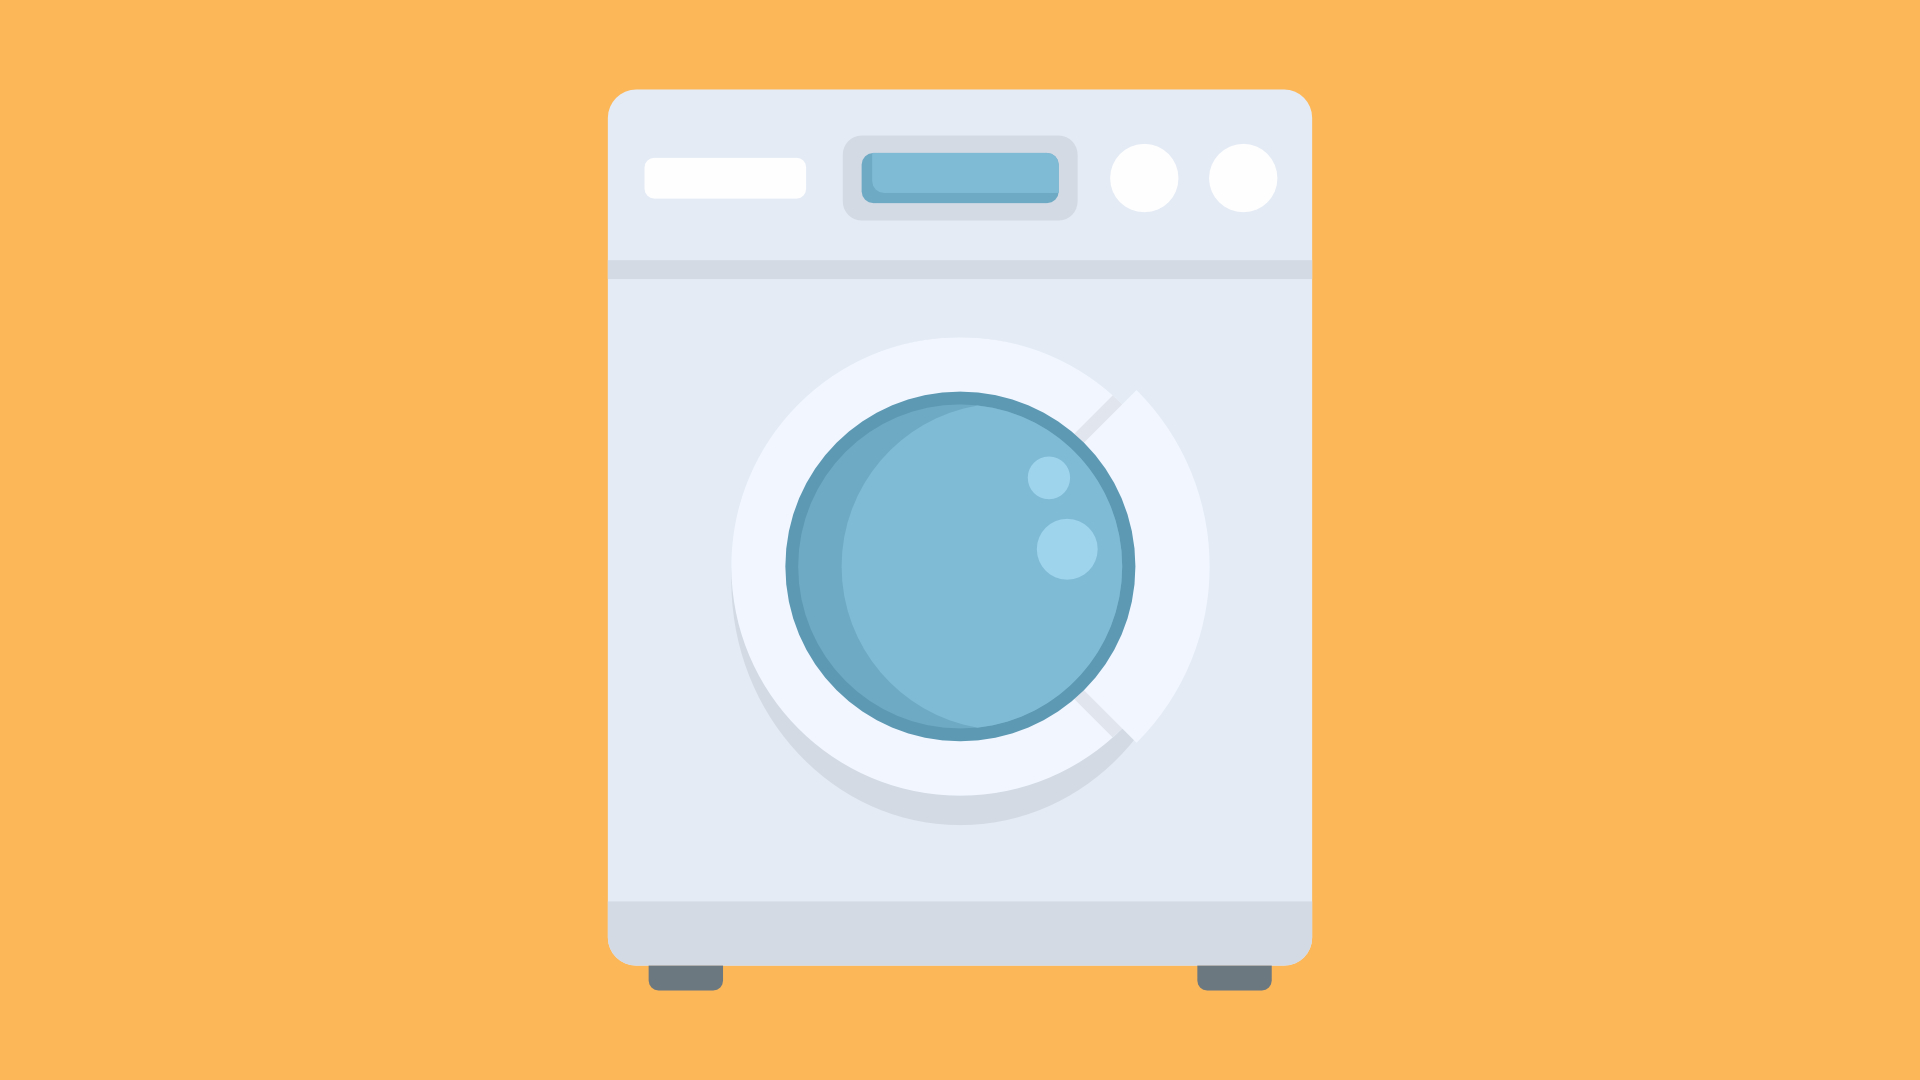 """Featured image for """"How to Fix the LG Washer UE Error Code"""""""